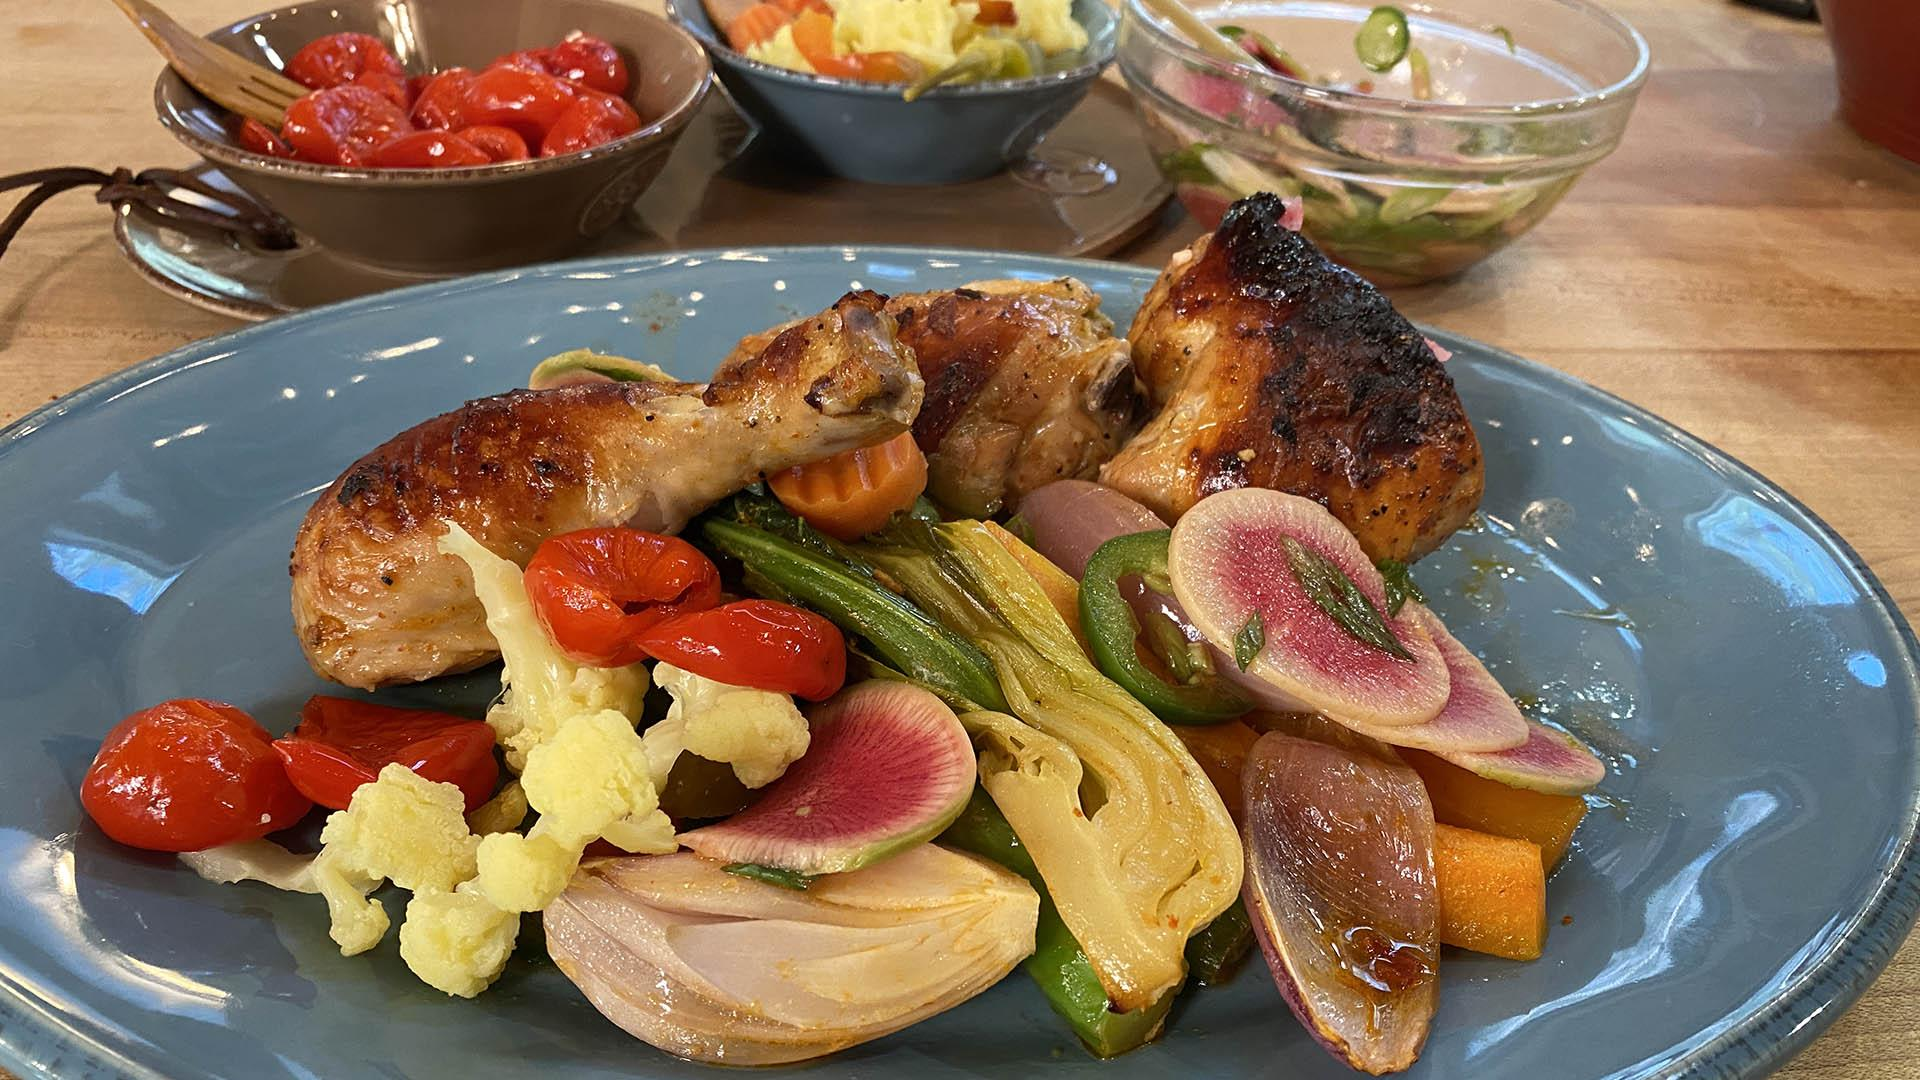 Sheet Pan Supper: Korean-Style Chicken and Vegetables